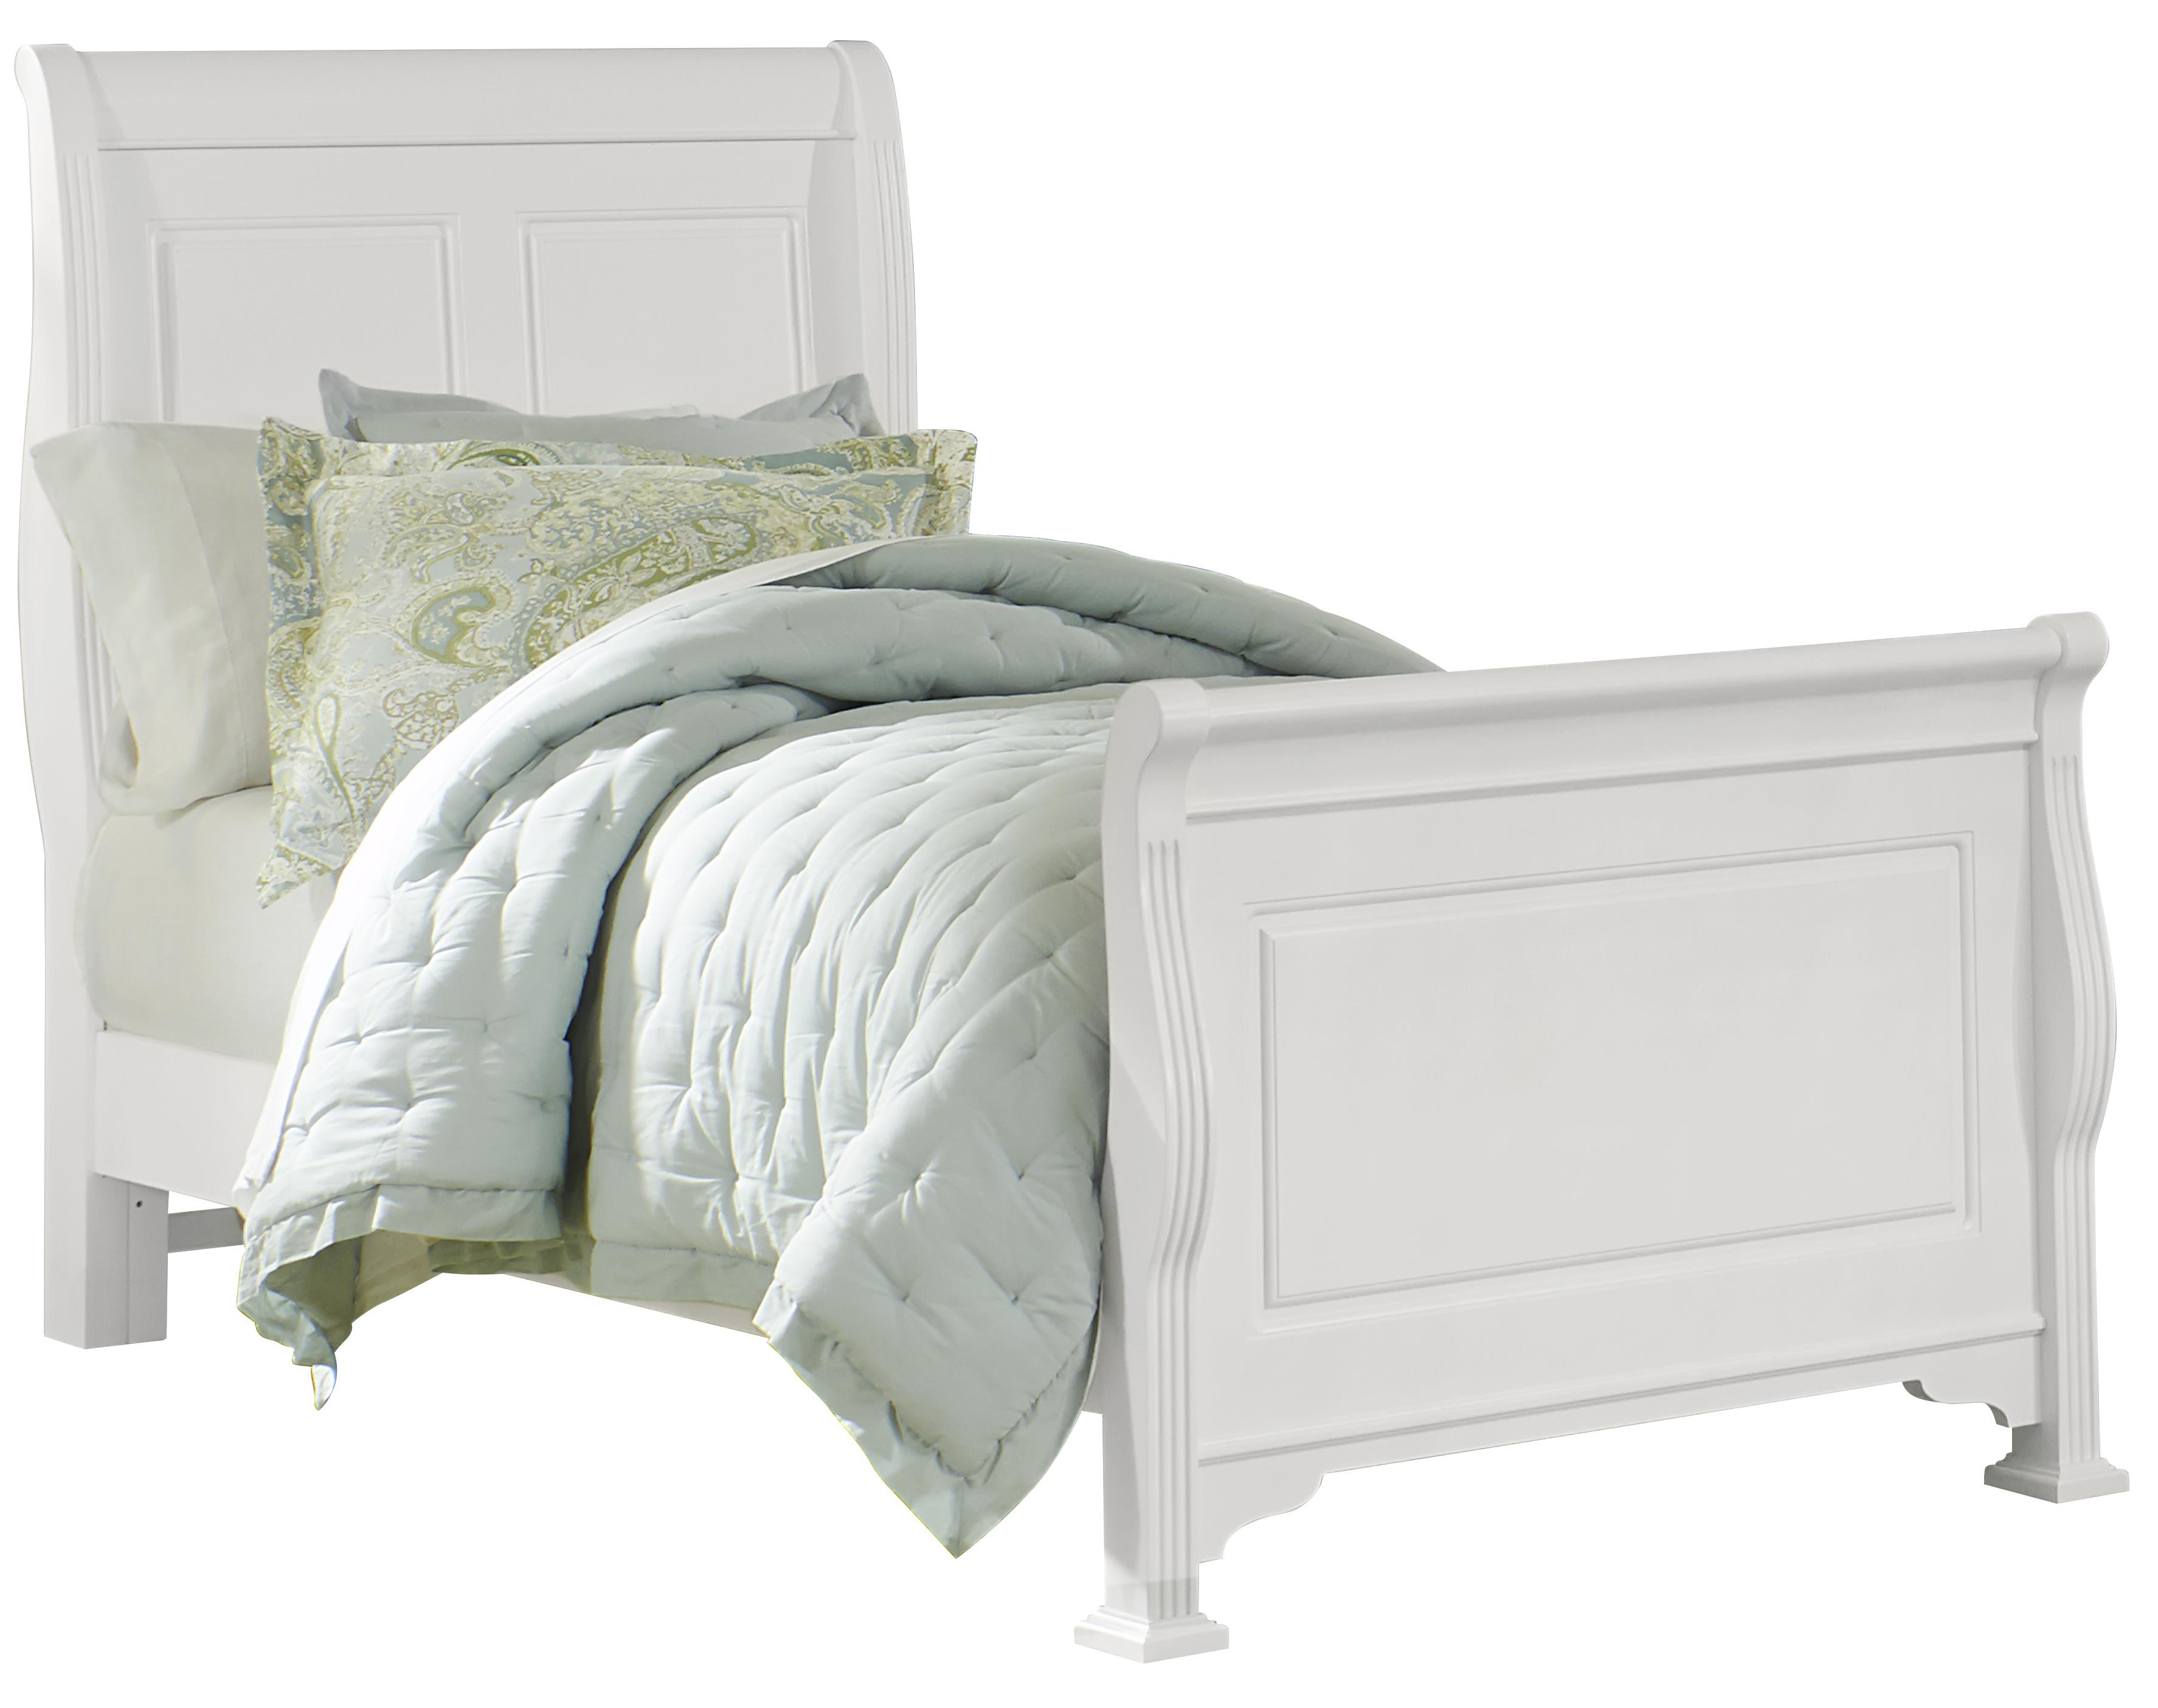 Vaughan Bassett French Market Twin Sleigh Bed - Item Number: 384-331+133+900